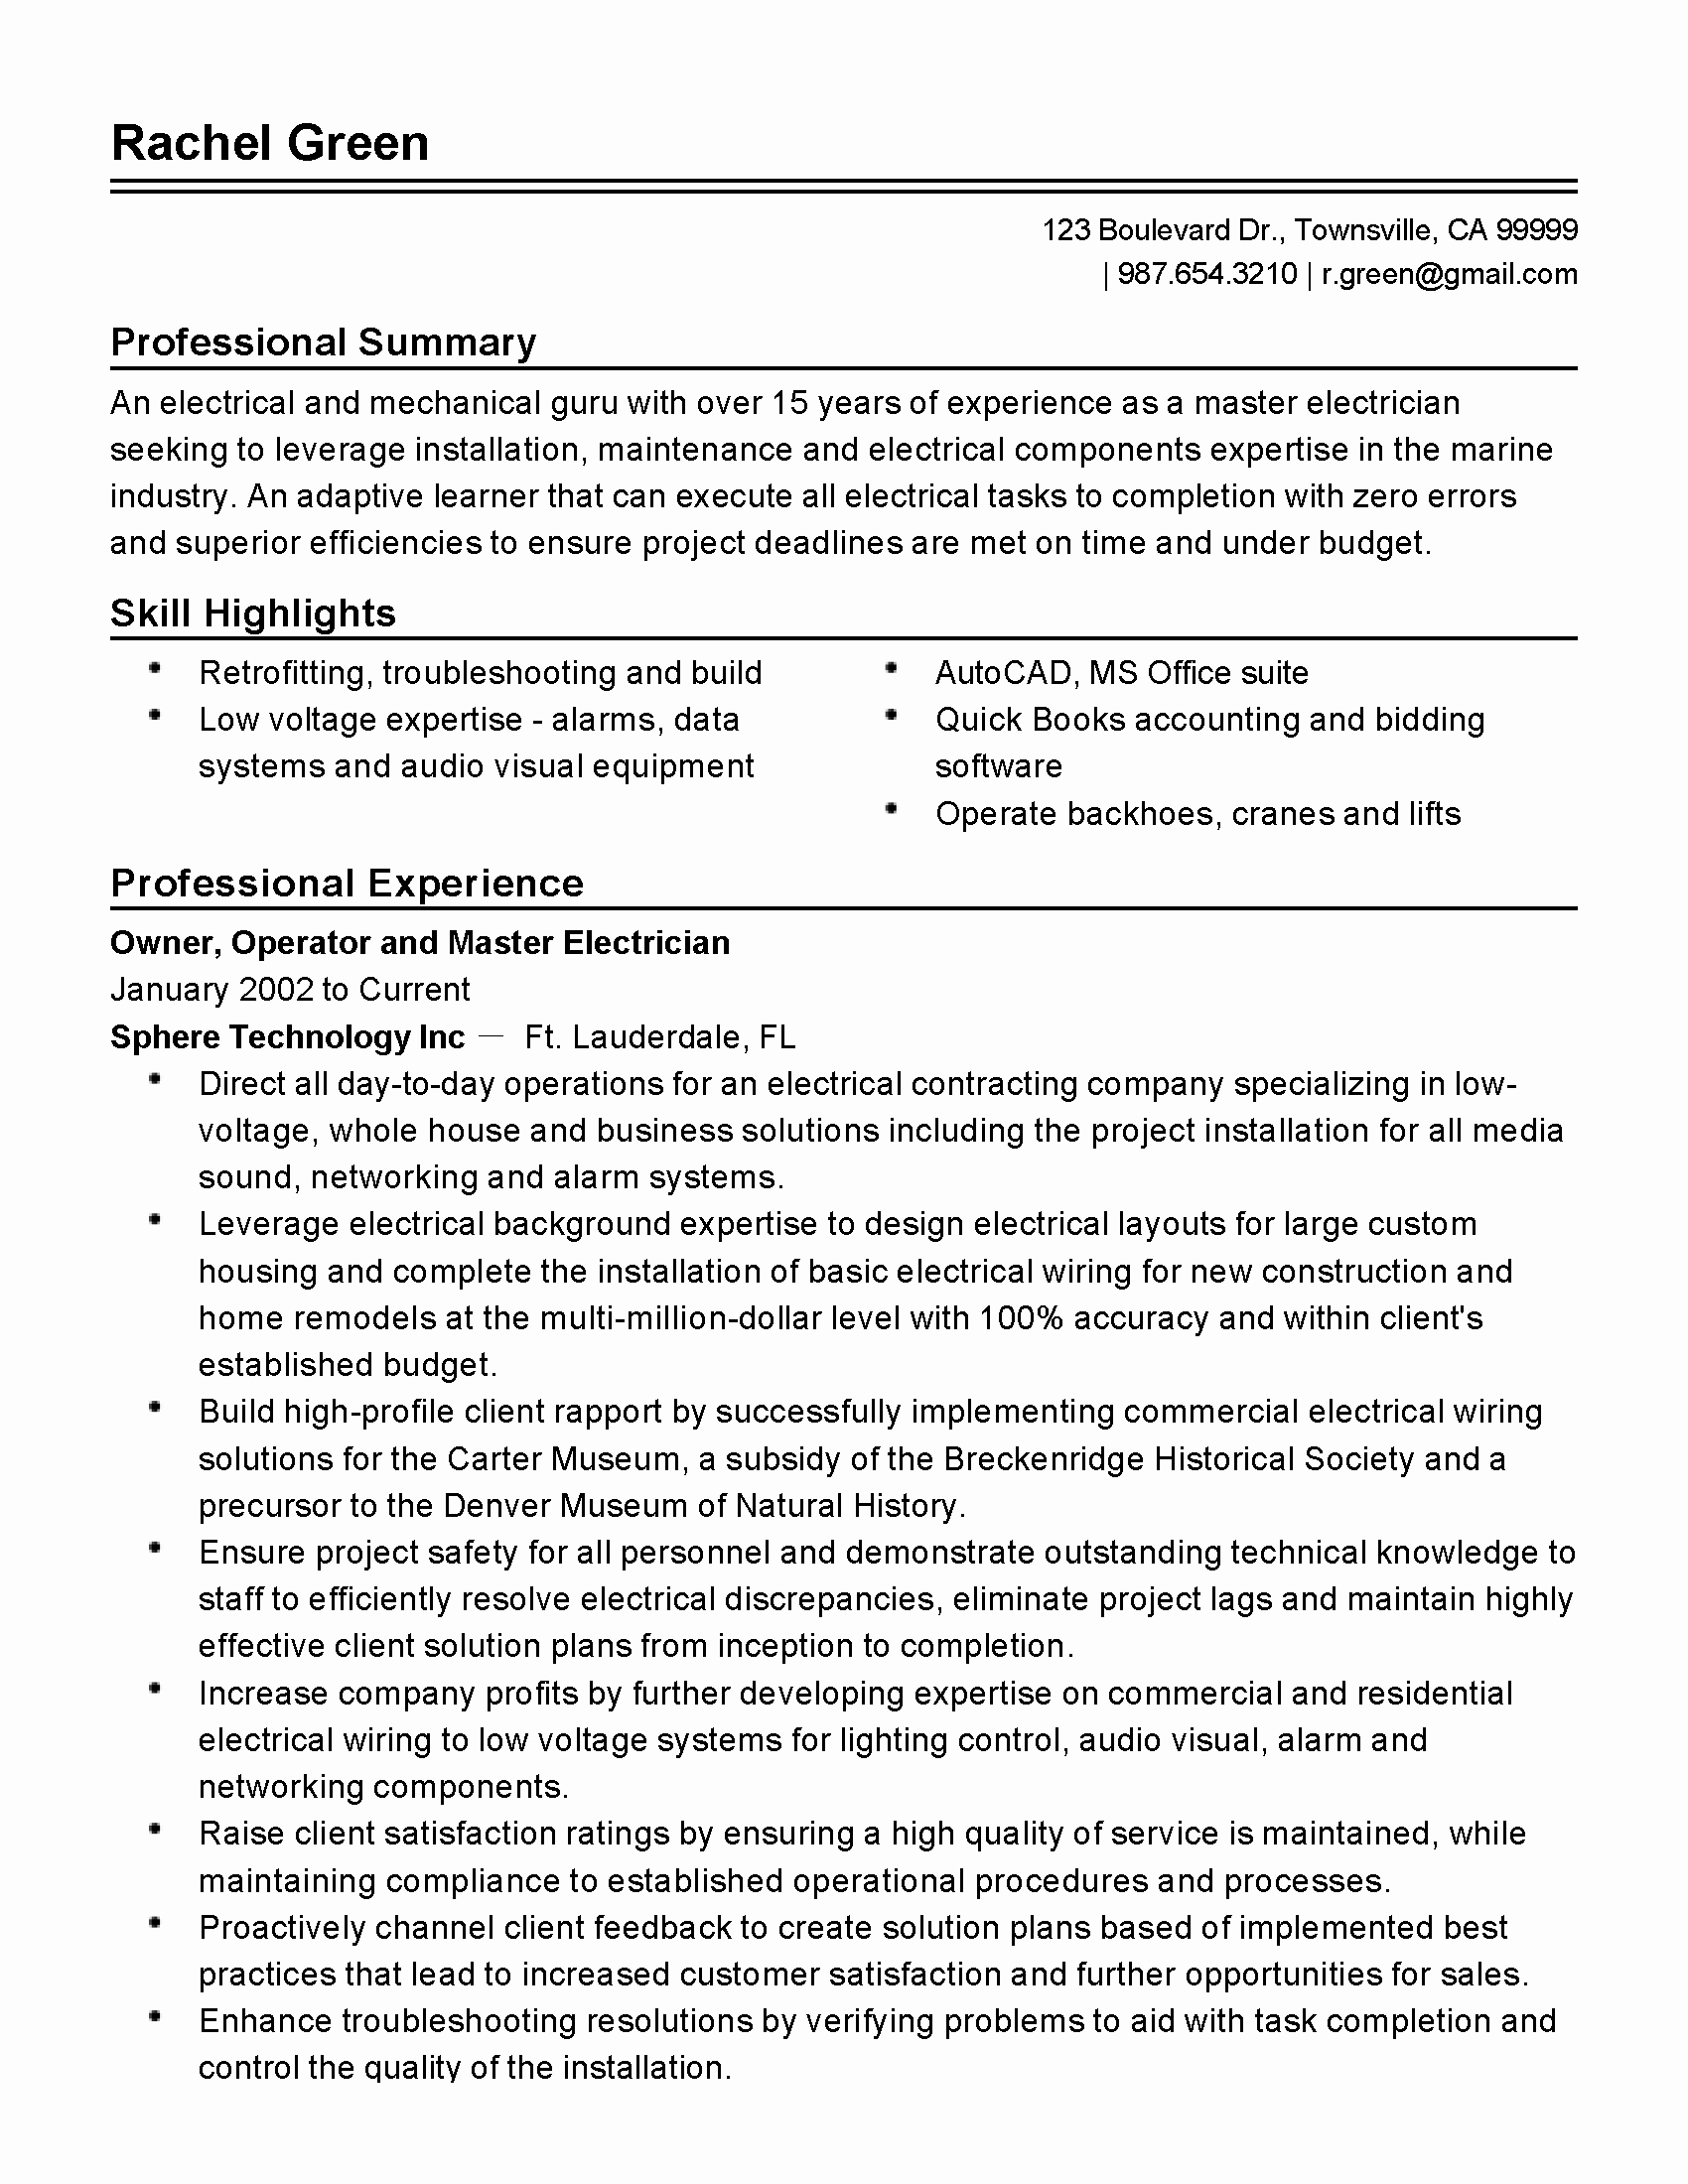 Sample Resumes for Electrician Luxury Professional Master Electrician Templates to Showcase Your